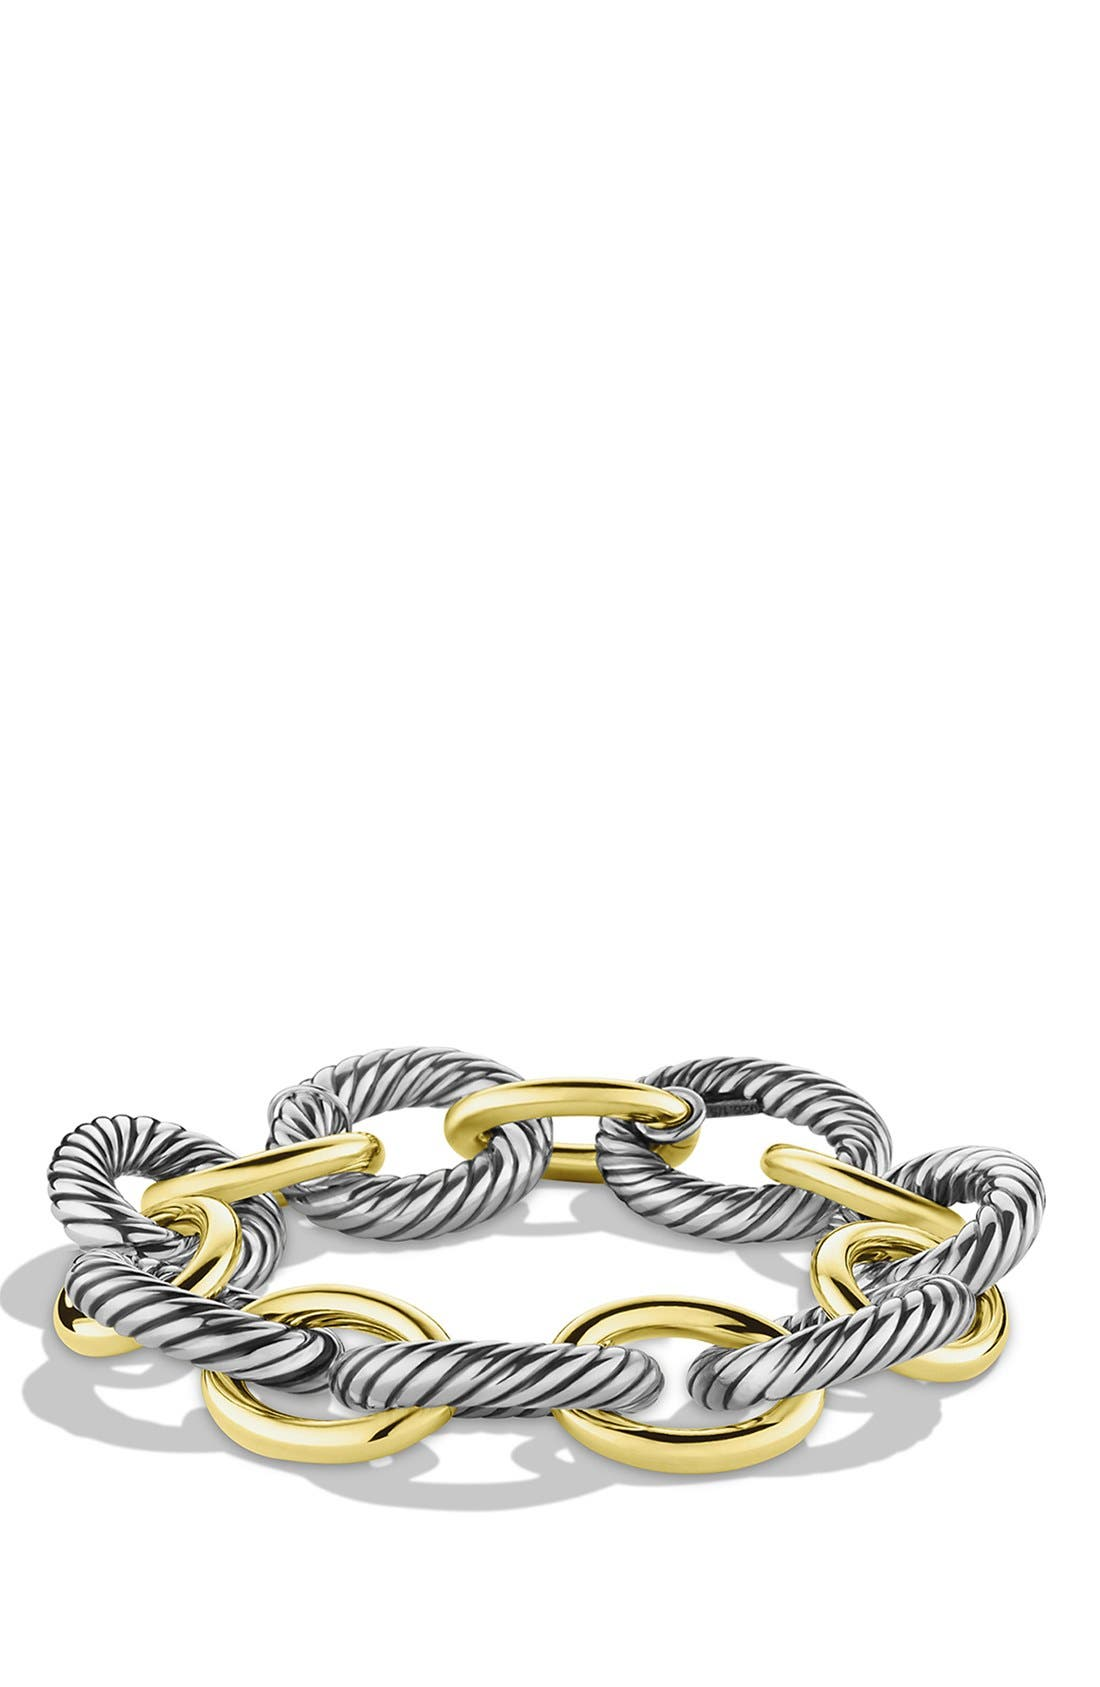 Main Image - David Yurman 'Oval' Extra-Large Link Bracelet with Gold